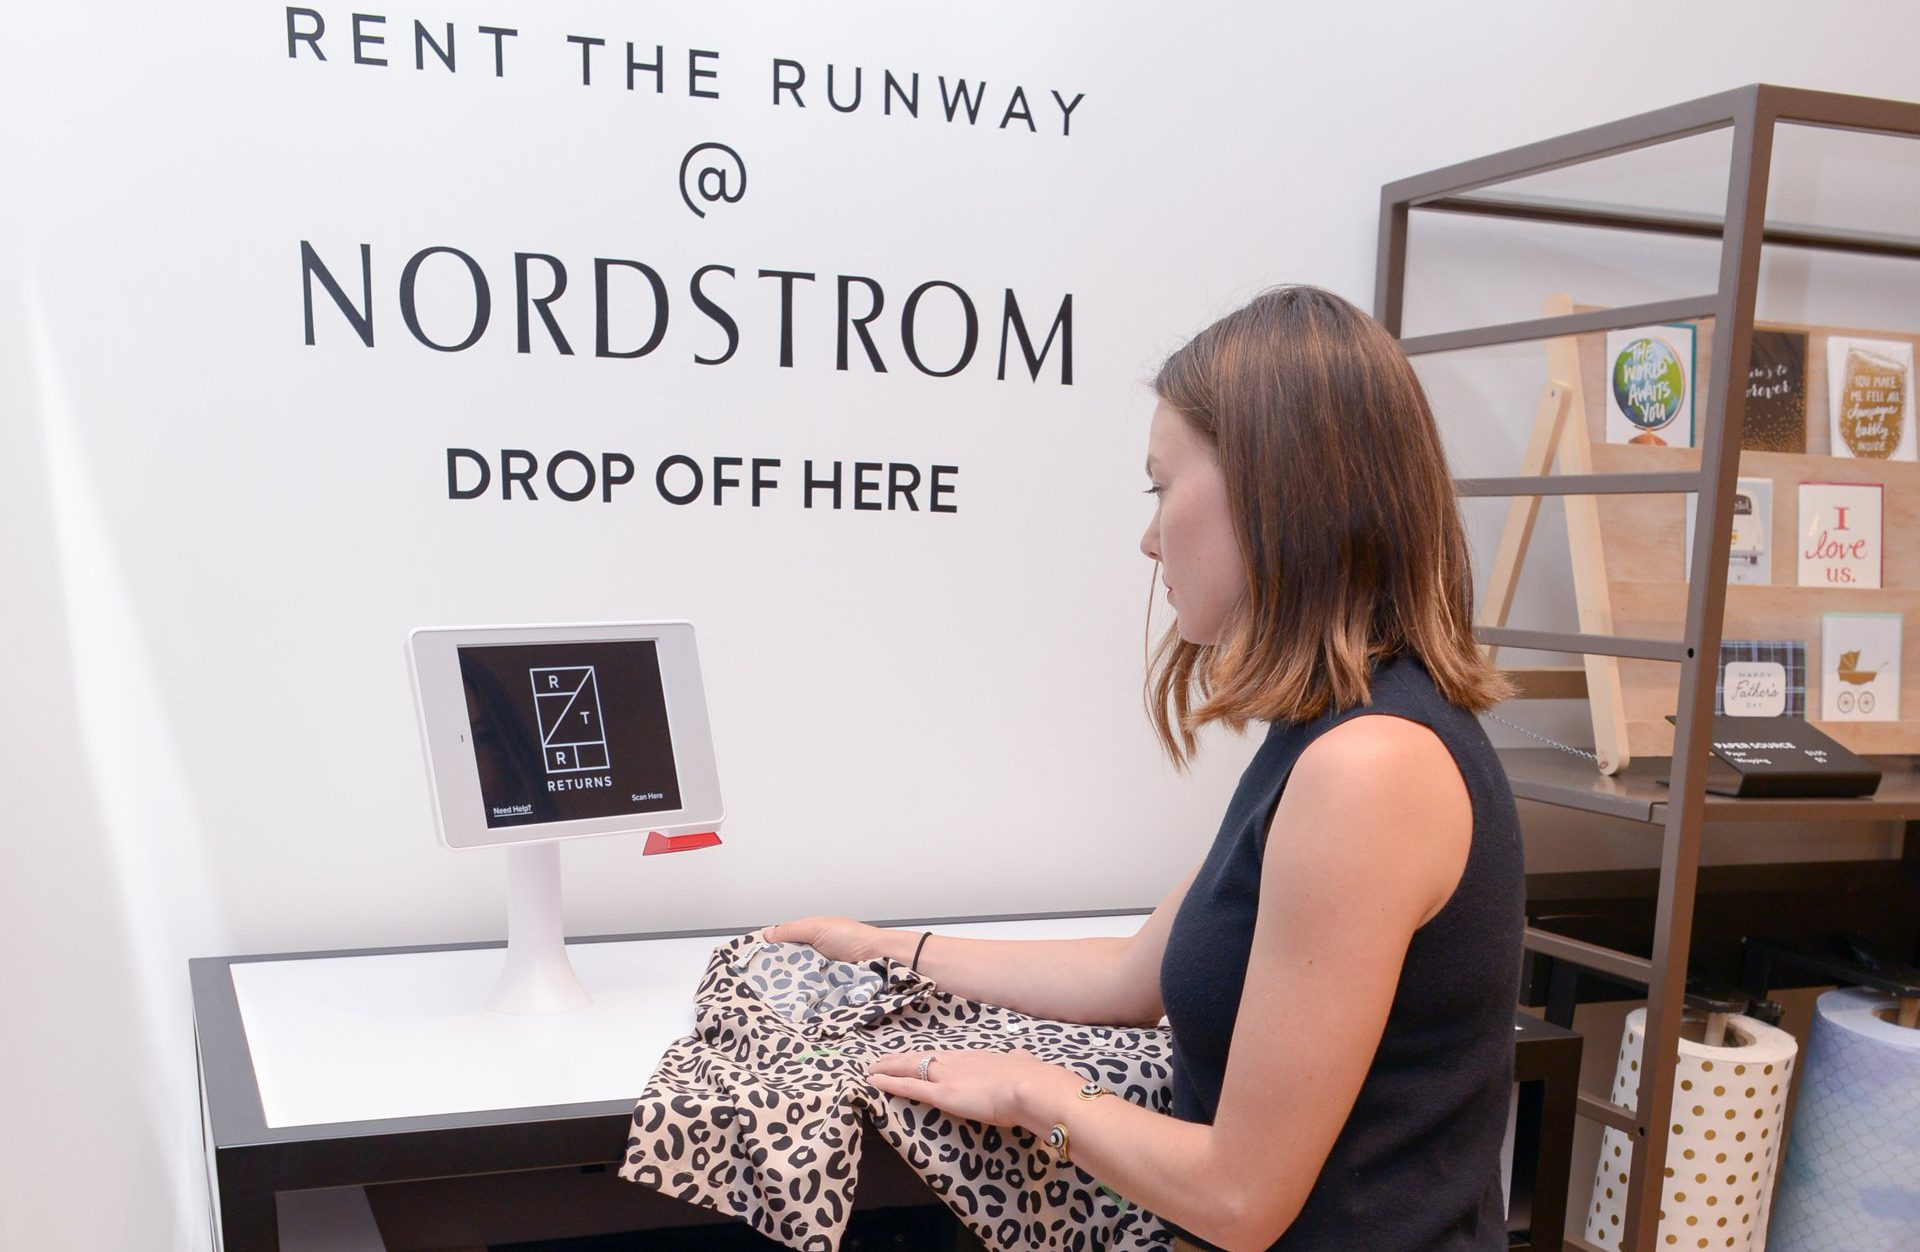 Aila-IK-white-Rent-the-runway-at-Nordstrom-Interactive-Kiosk